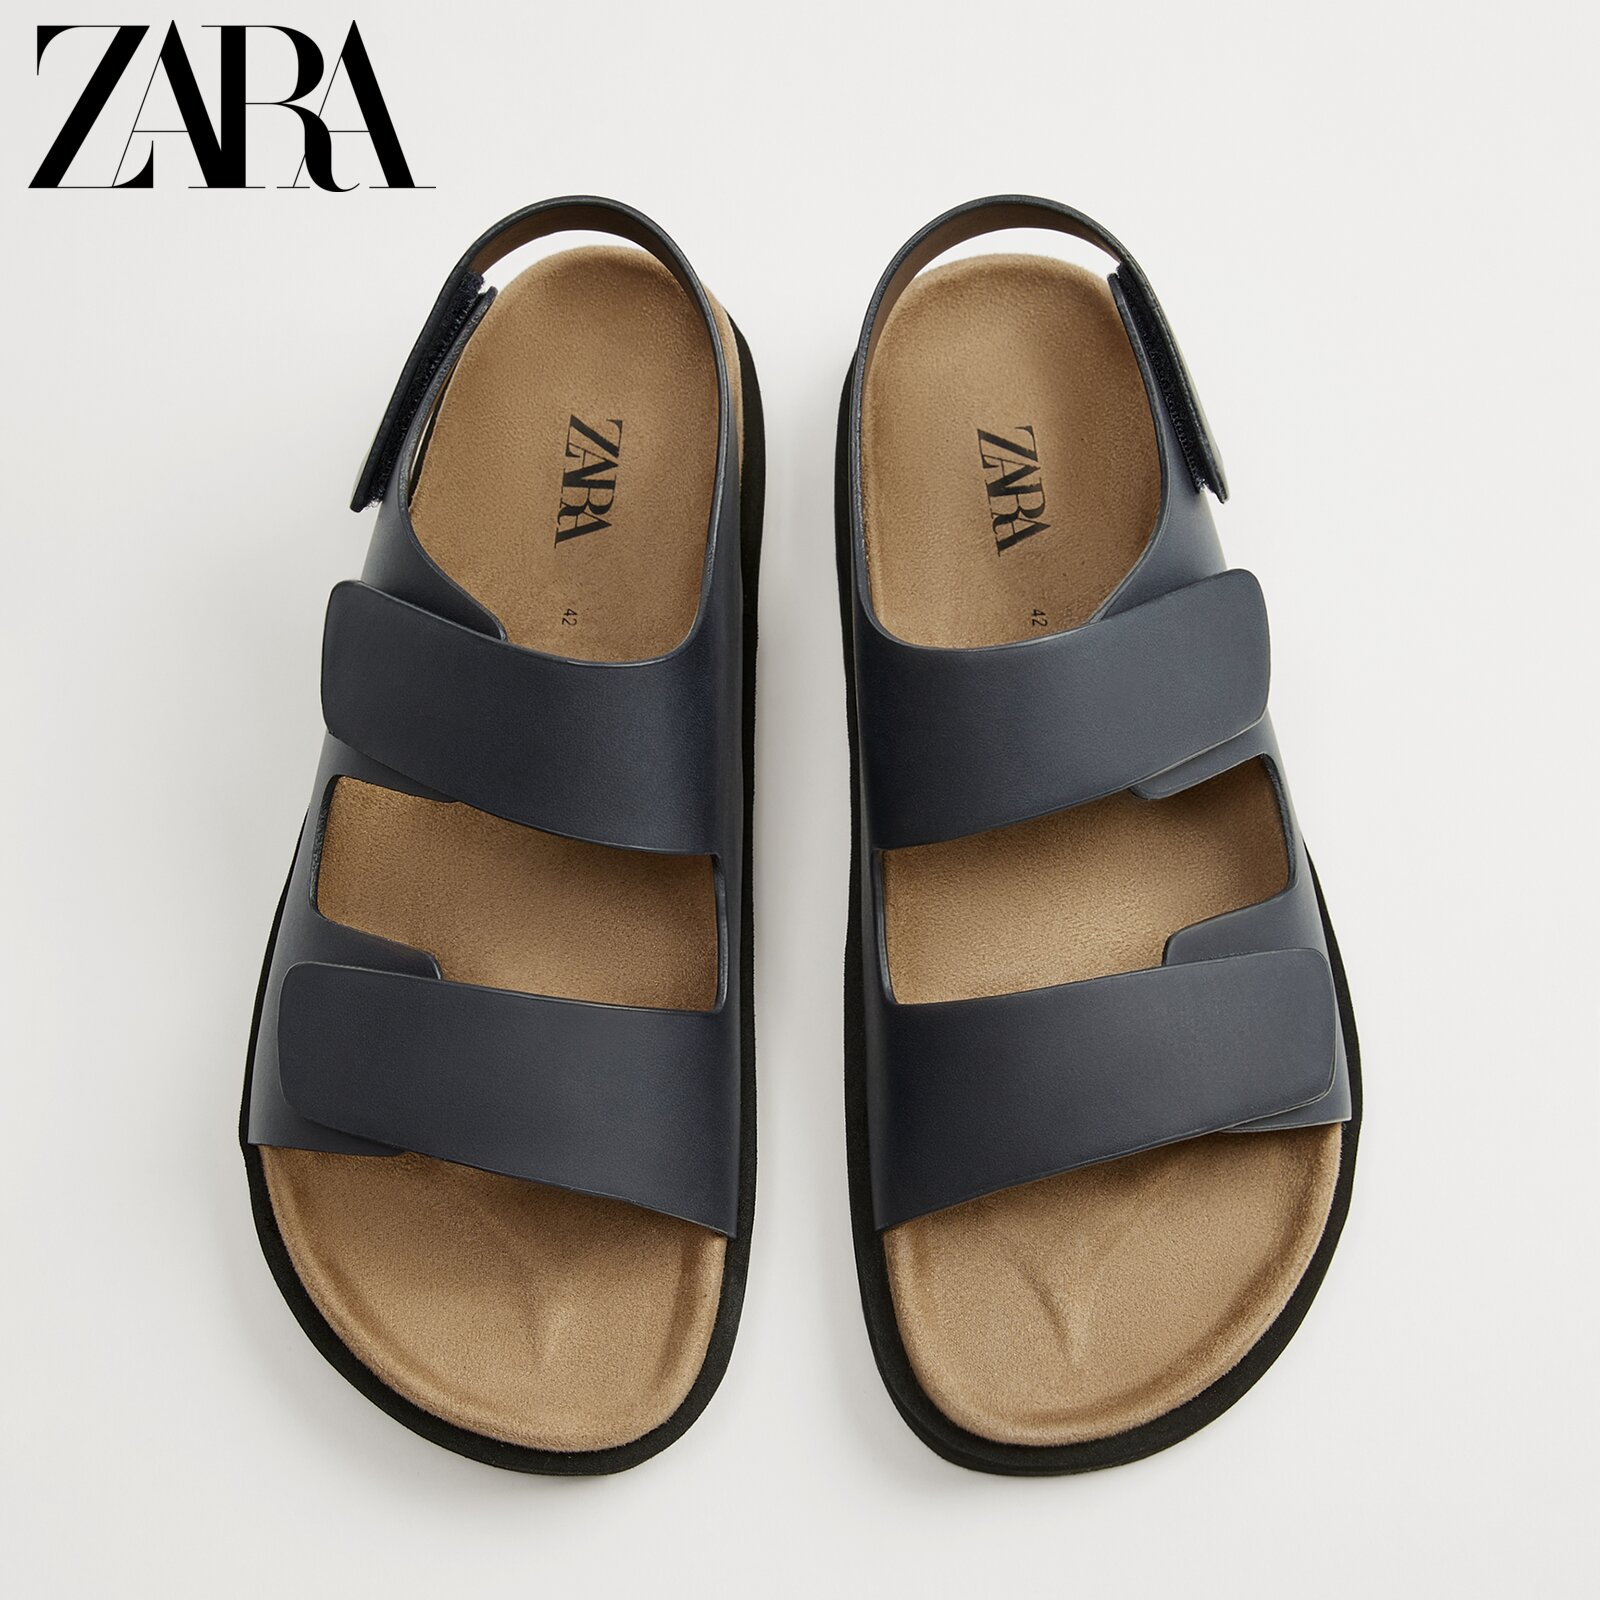 Zara new men's shoes navy blue magic lace sandals beach shoes 12714720010